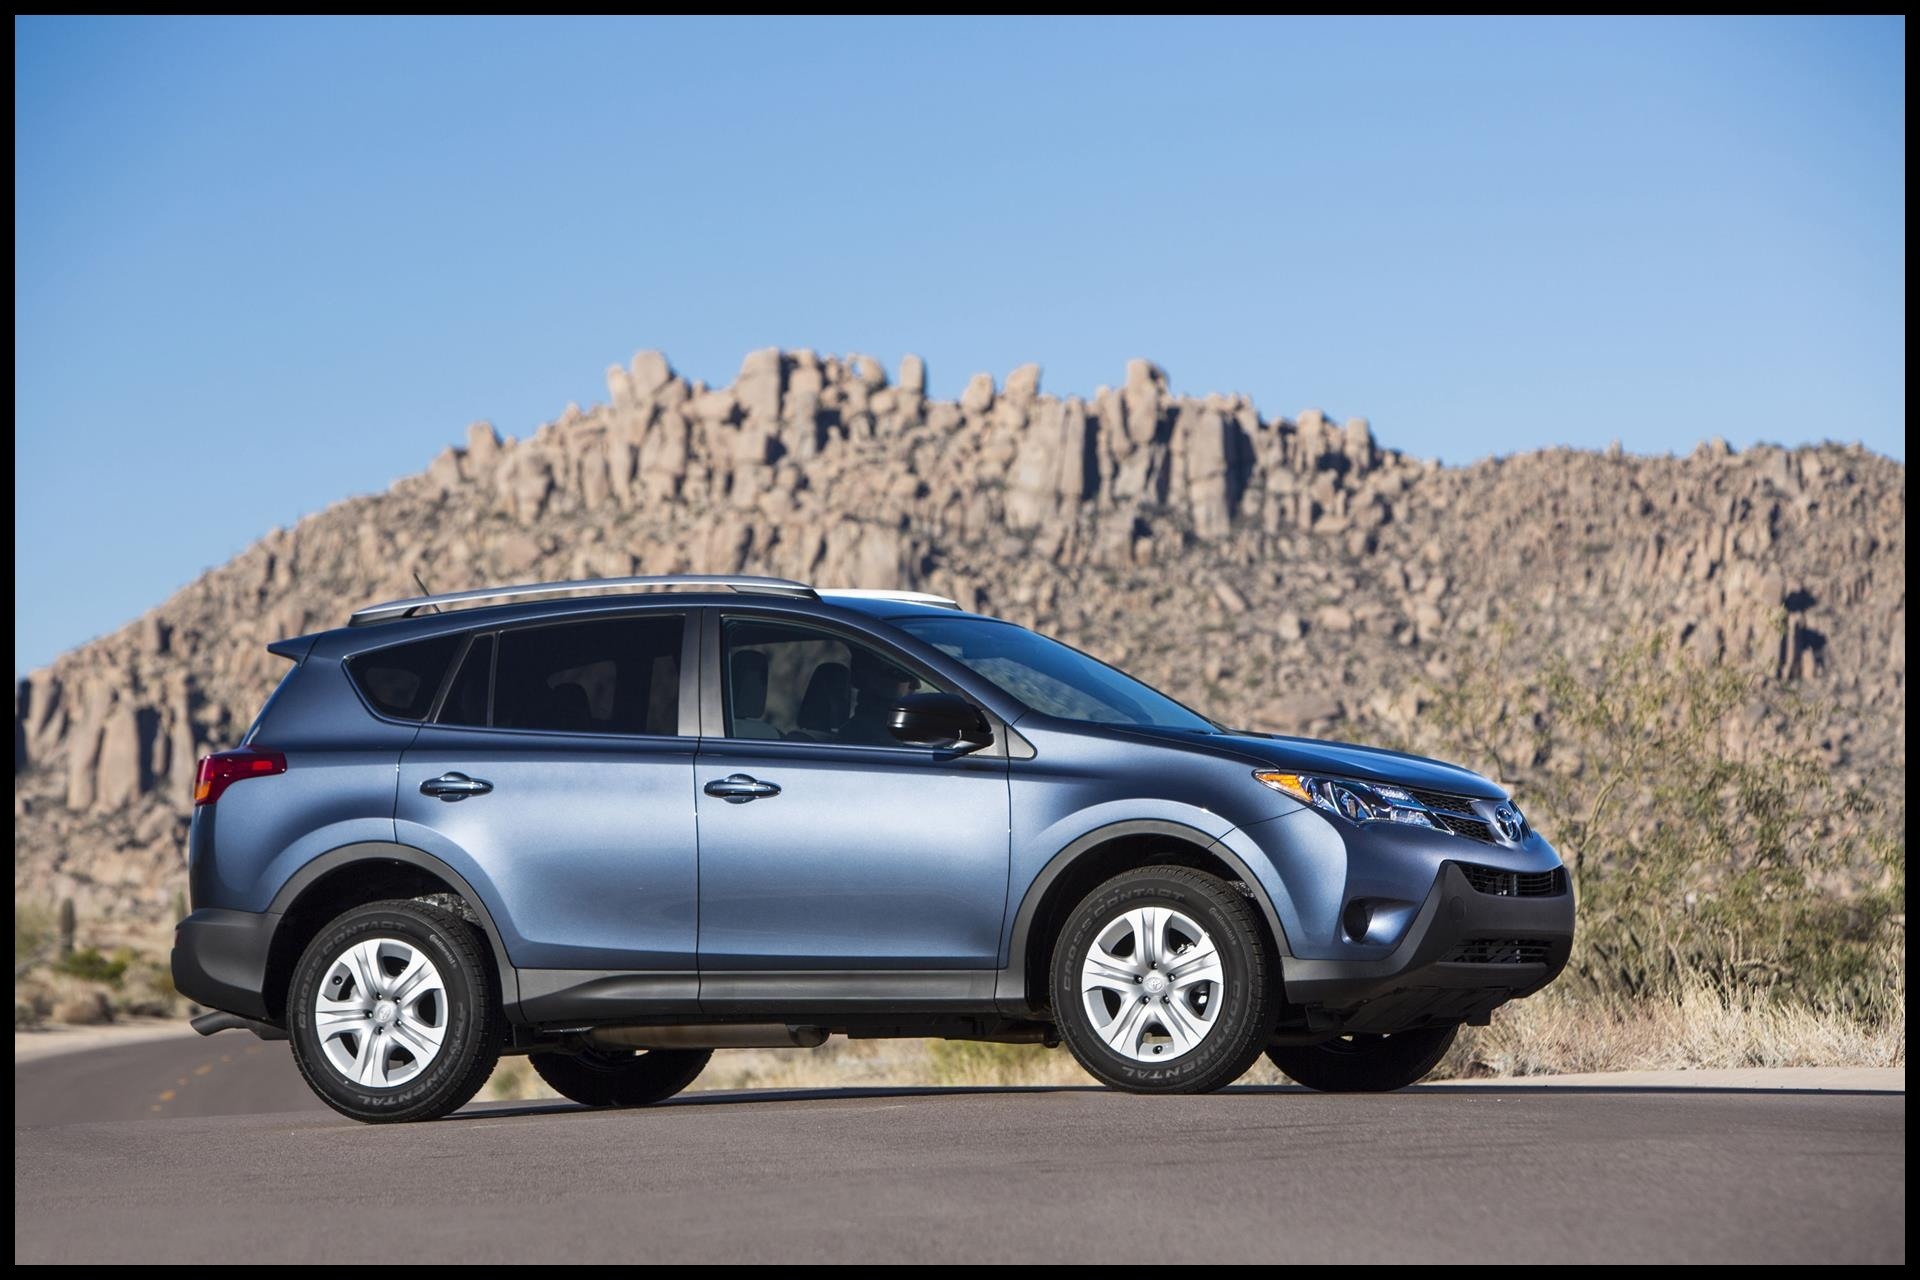 2015 Toyota RAV4 SUV photo 01